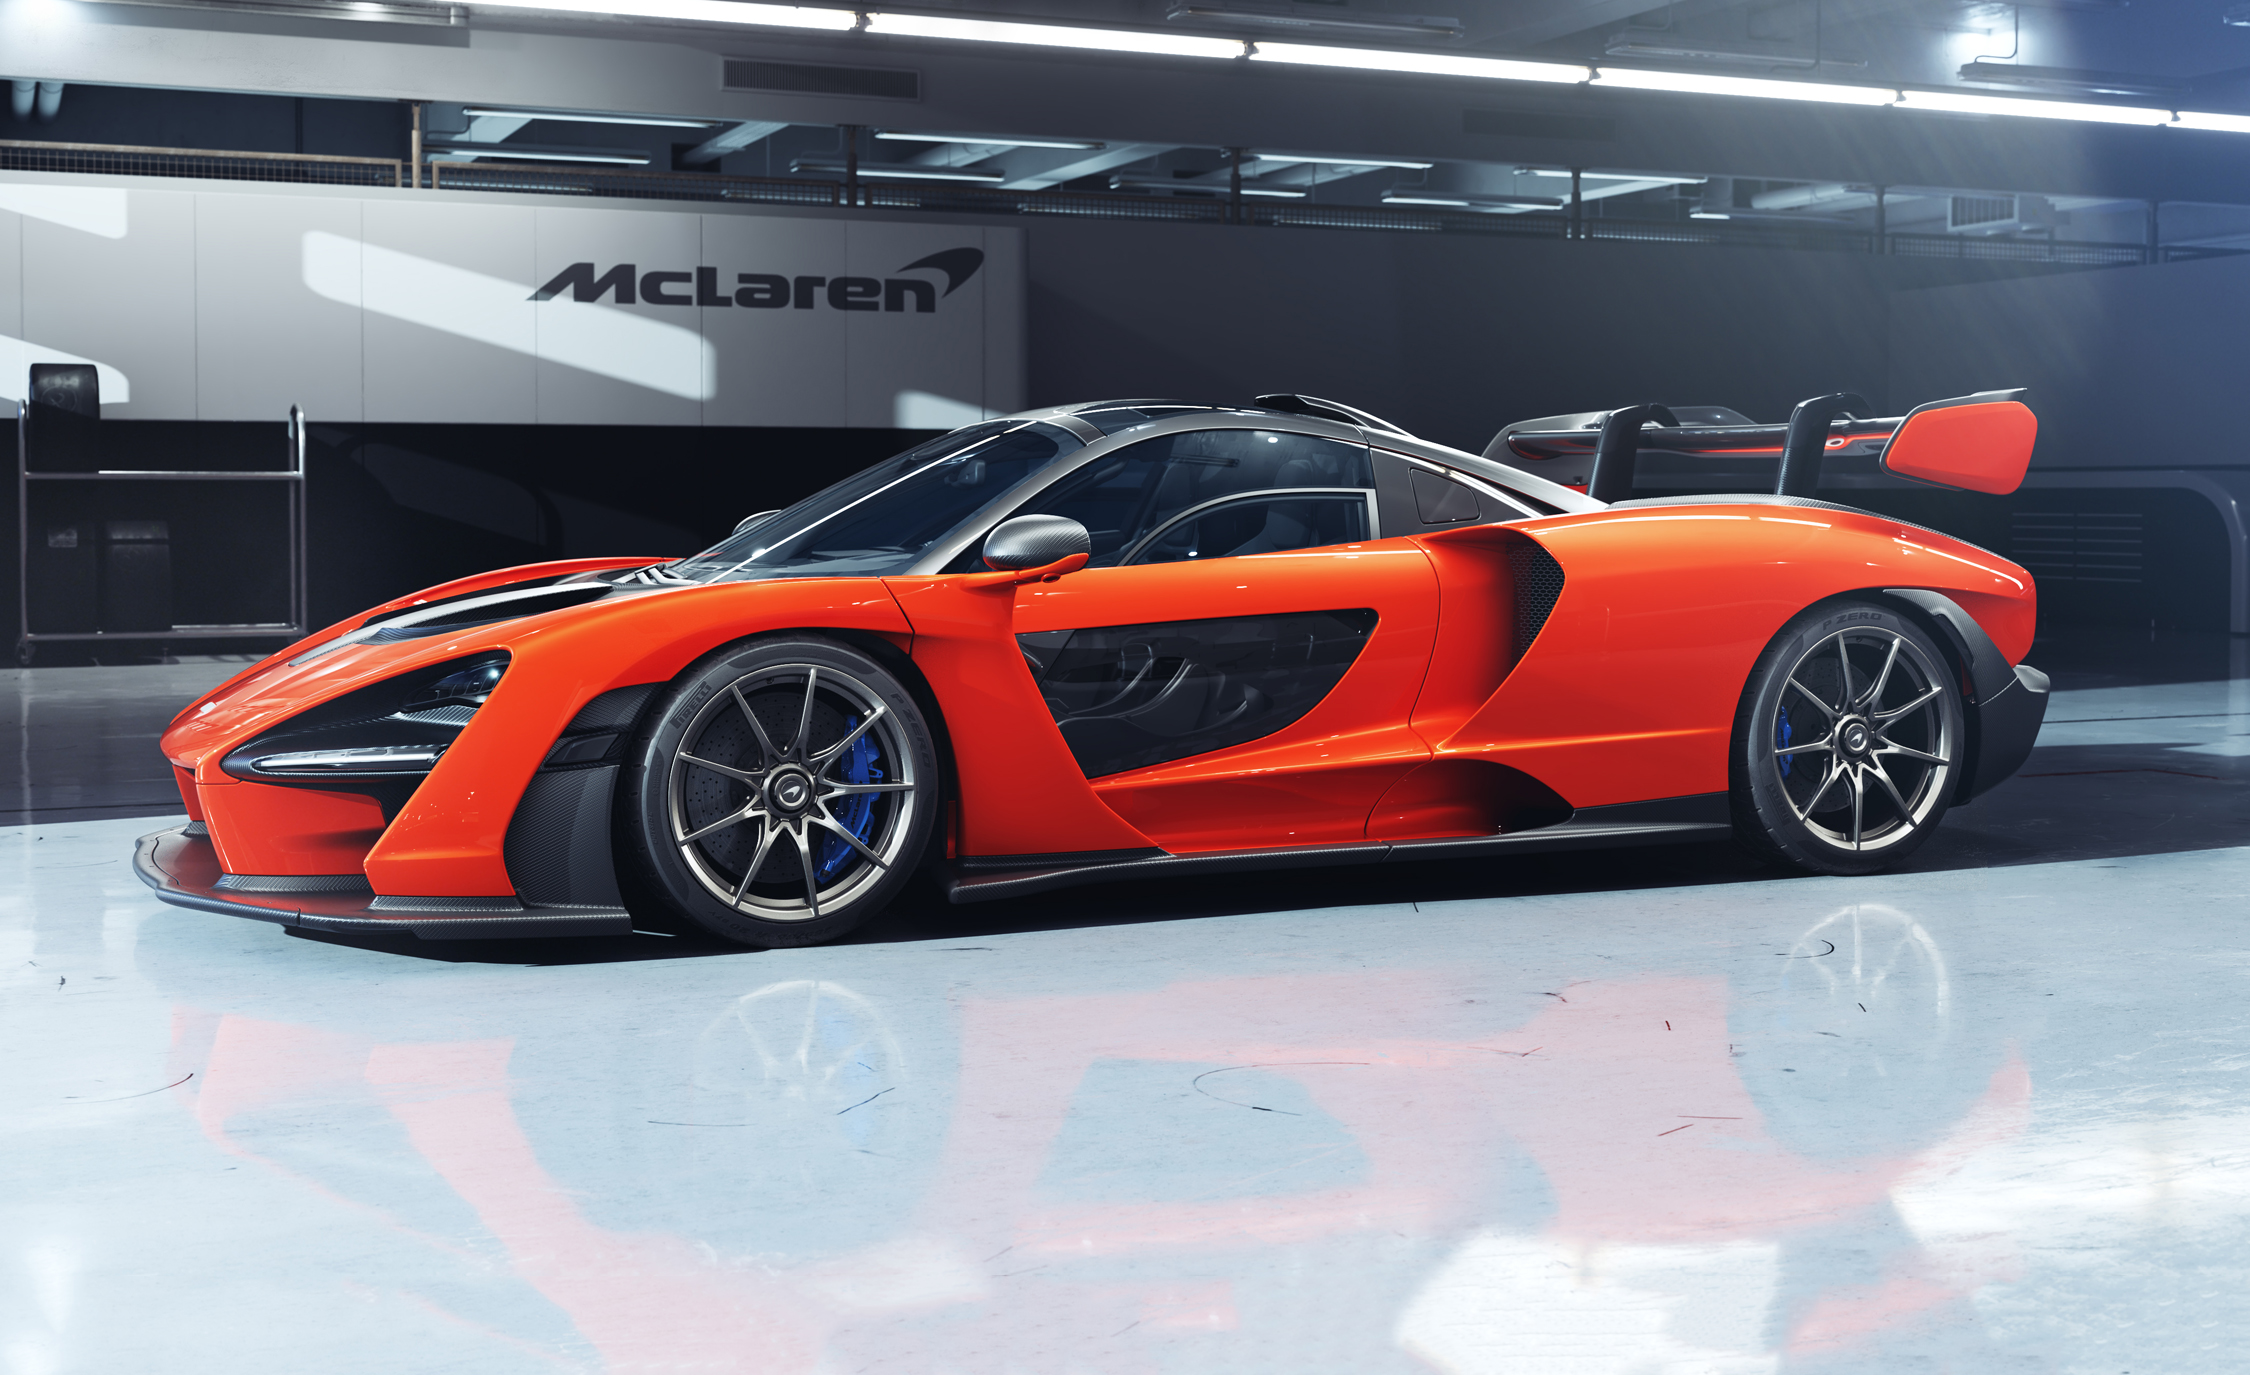 2019 McLaren Senna Hypercar Official Photos and Info | News | Car ...